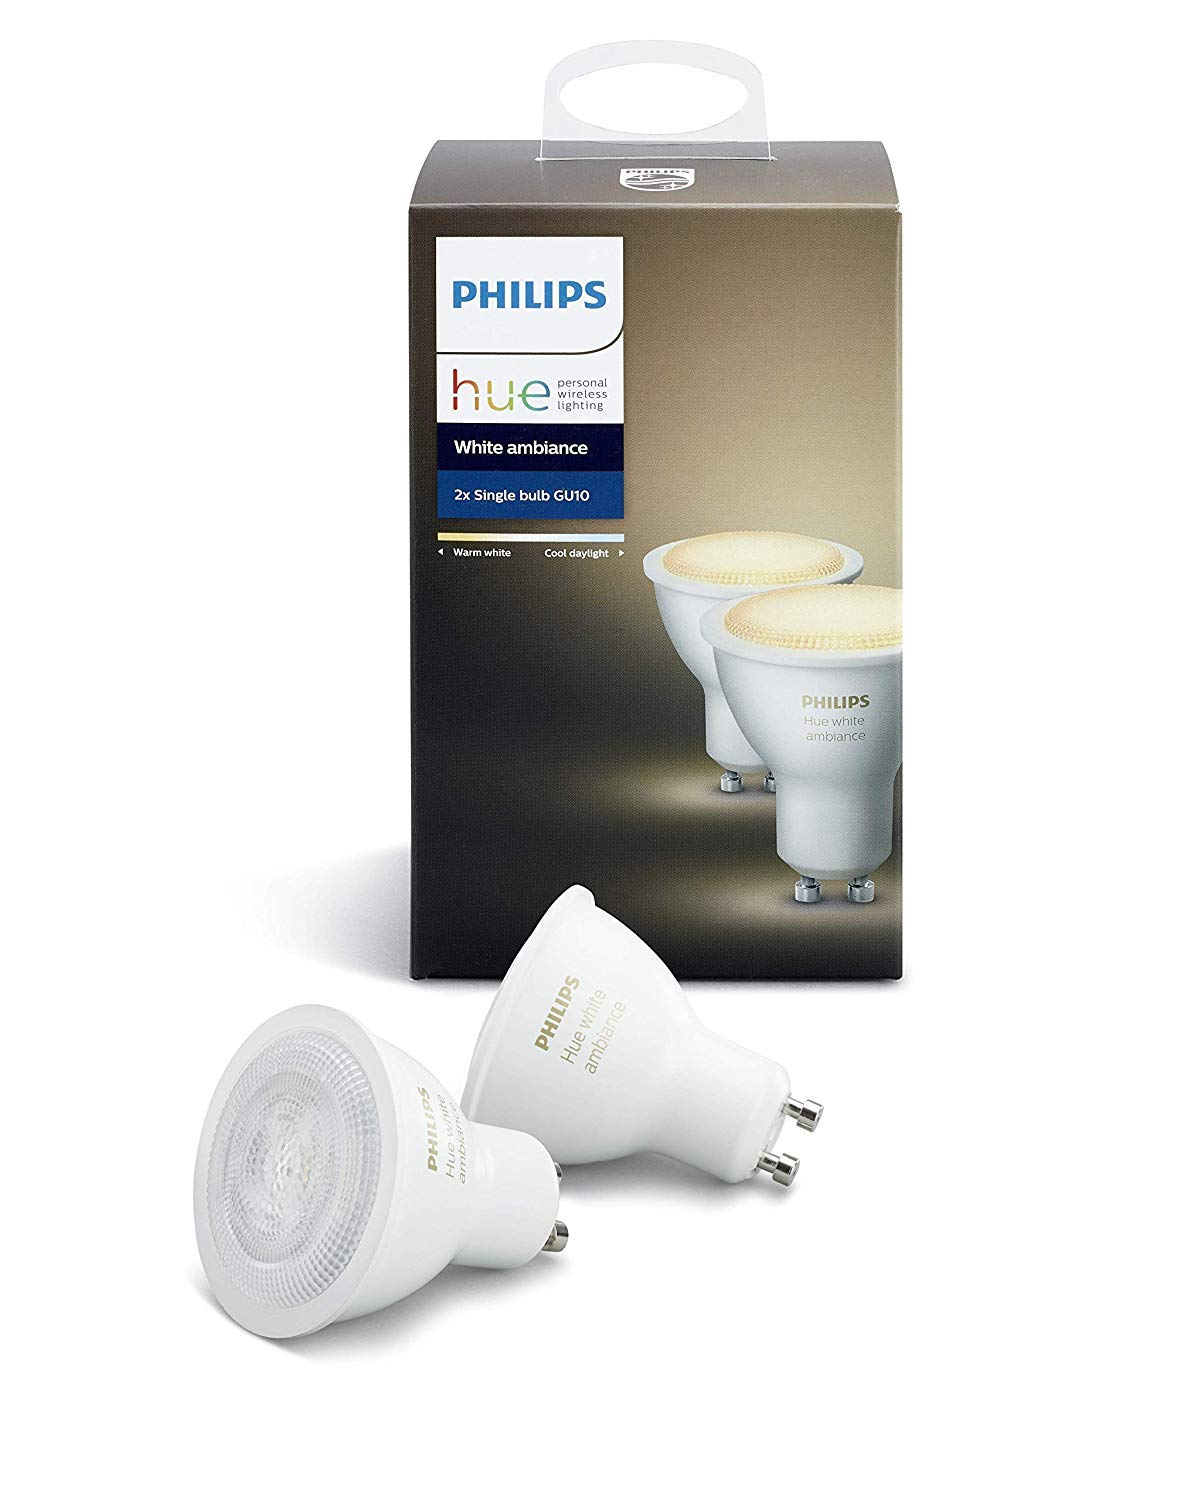 Philips Hue White Ambiance - Pack de 2 bombillas LED (2x5.5W, GU10